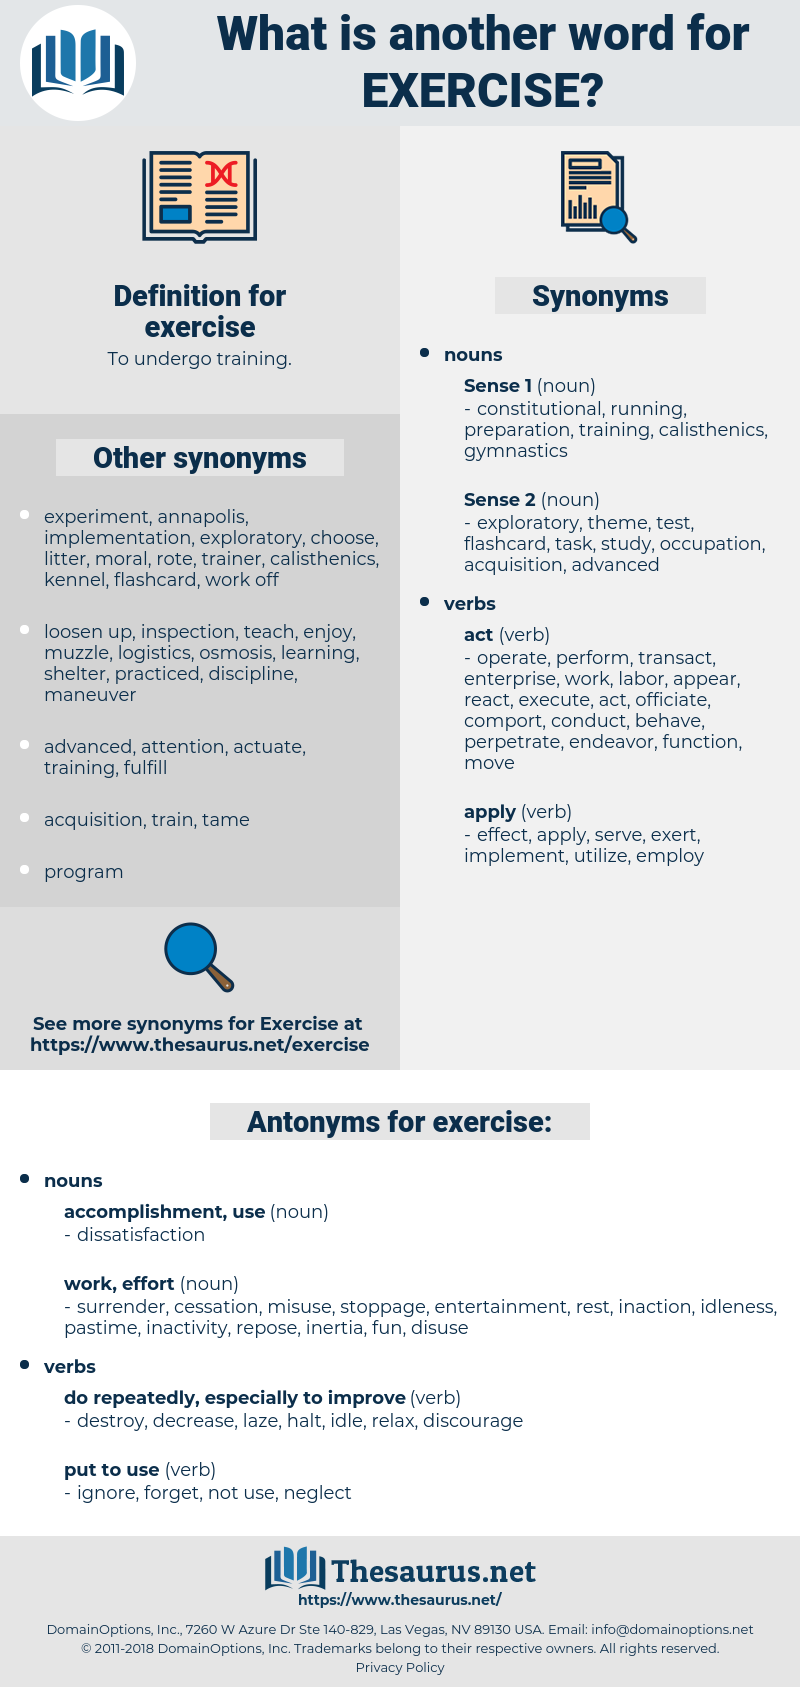 exercise, synonym exercise, another word for exercise, words like exercise, thesaurus exercise